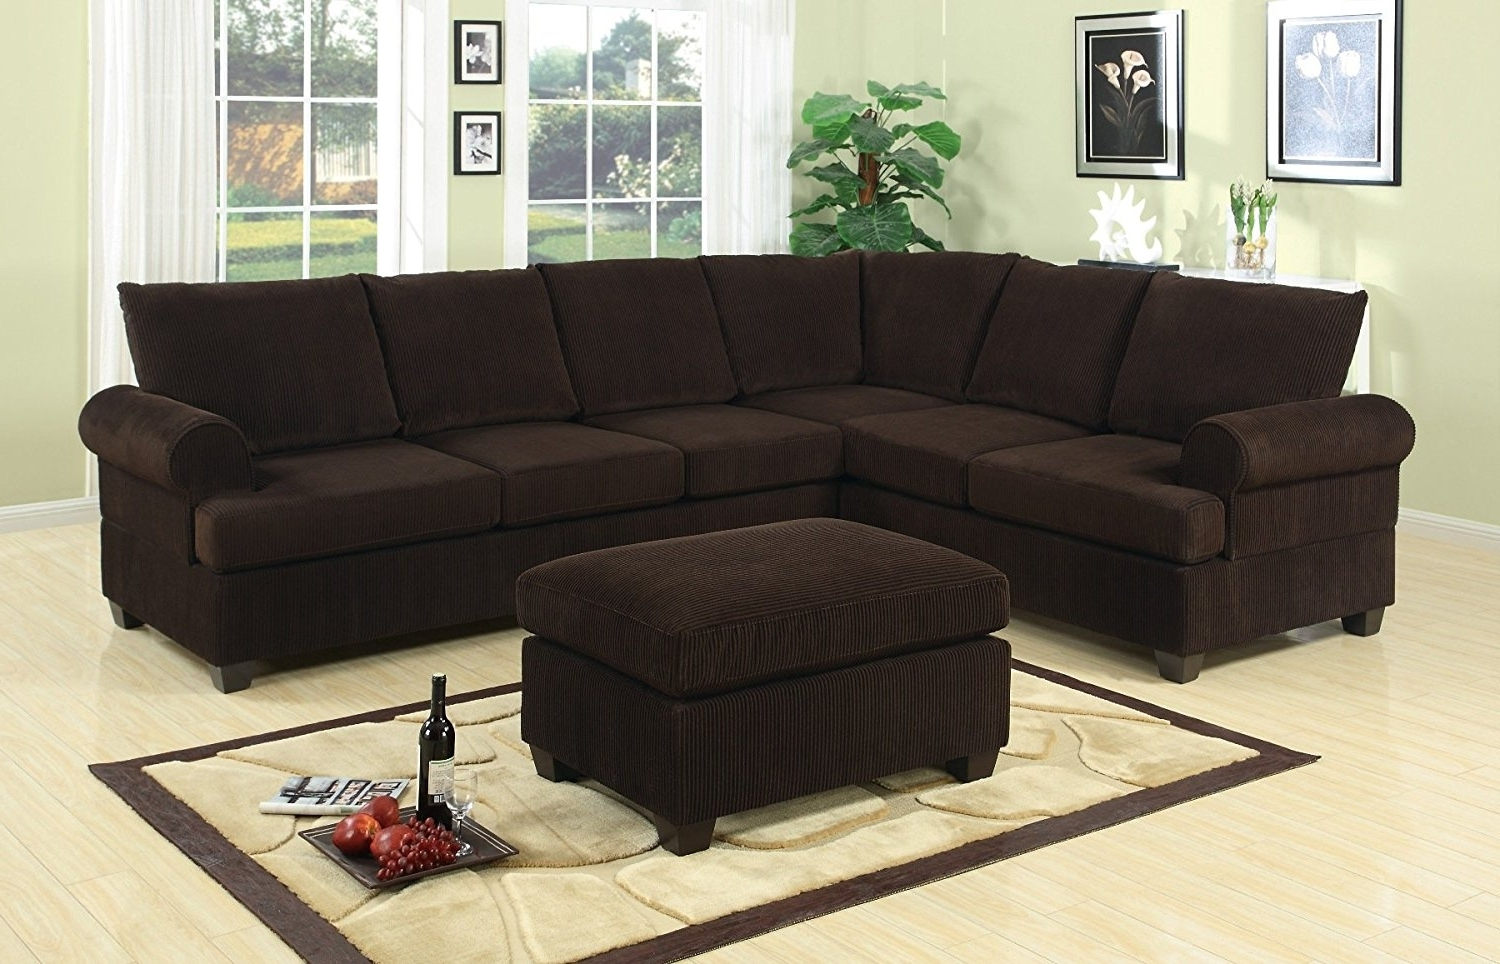 Most Popular Sectional Sofas Jacksonville Fl – Home And Textiles Inside Jacksonville Florida Sectional Sofas (View 11 of 15)